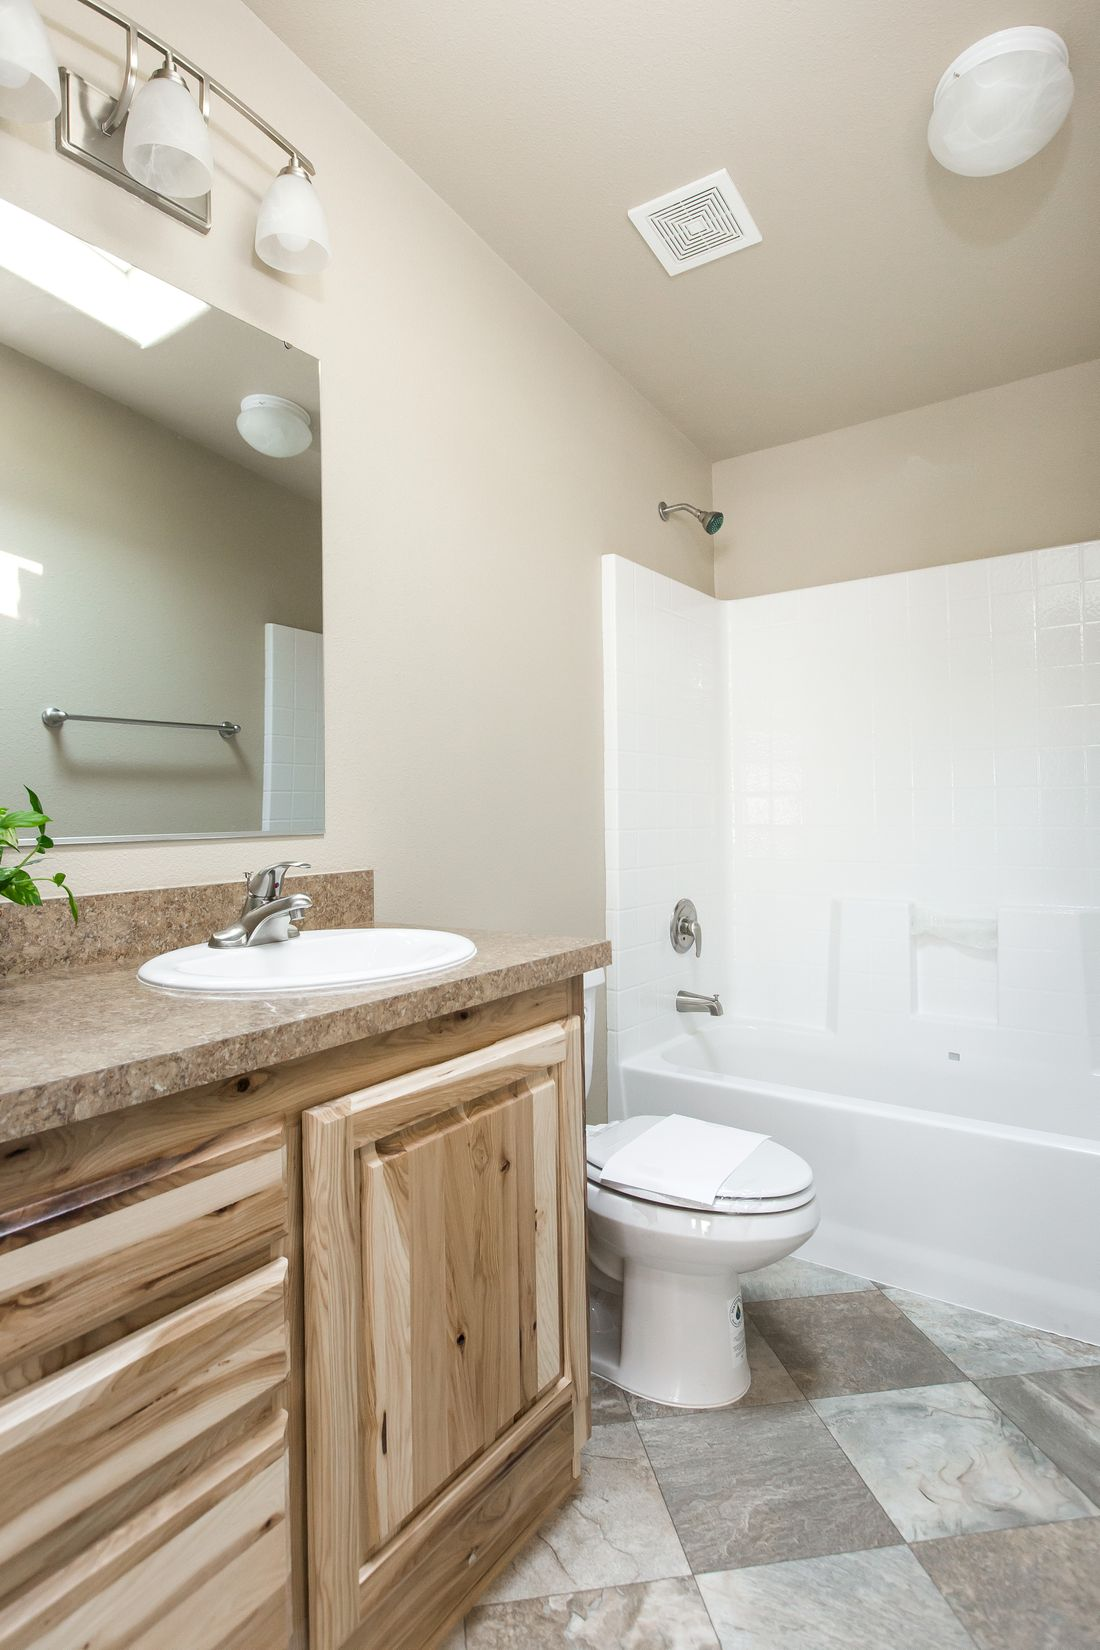 The 2027 COLUMIA RIVER Guest Bathroom. This Manufactured Mobile Home features 4 bedrooms and 2 baths.